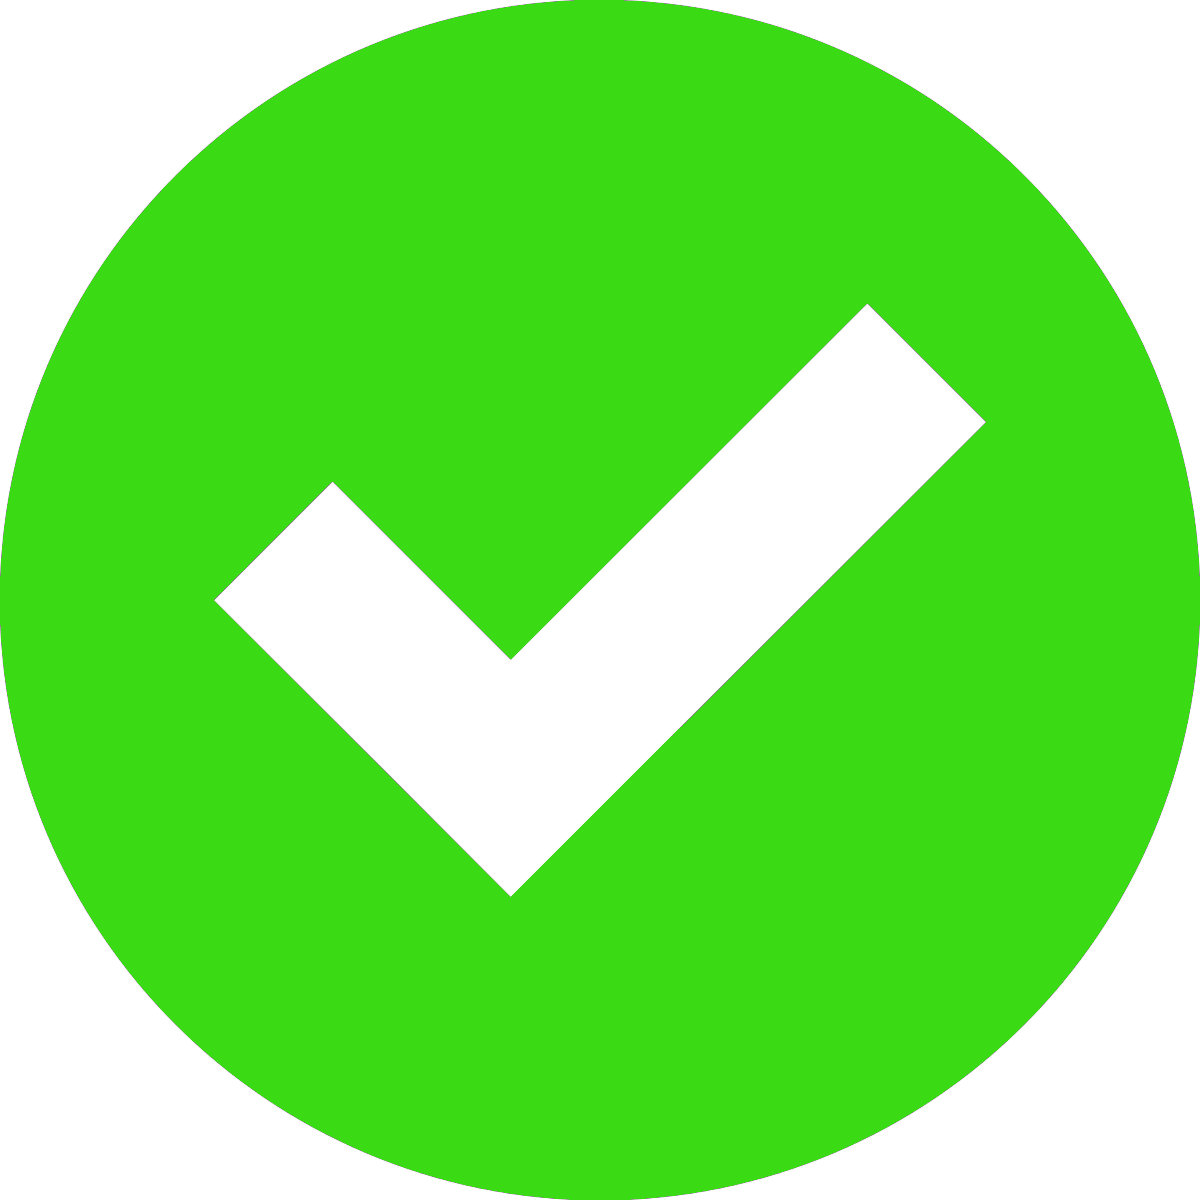 Success Icon Png #284077.